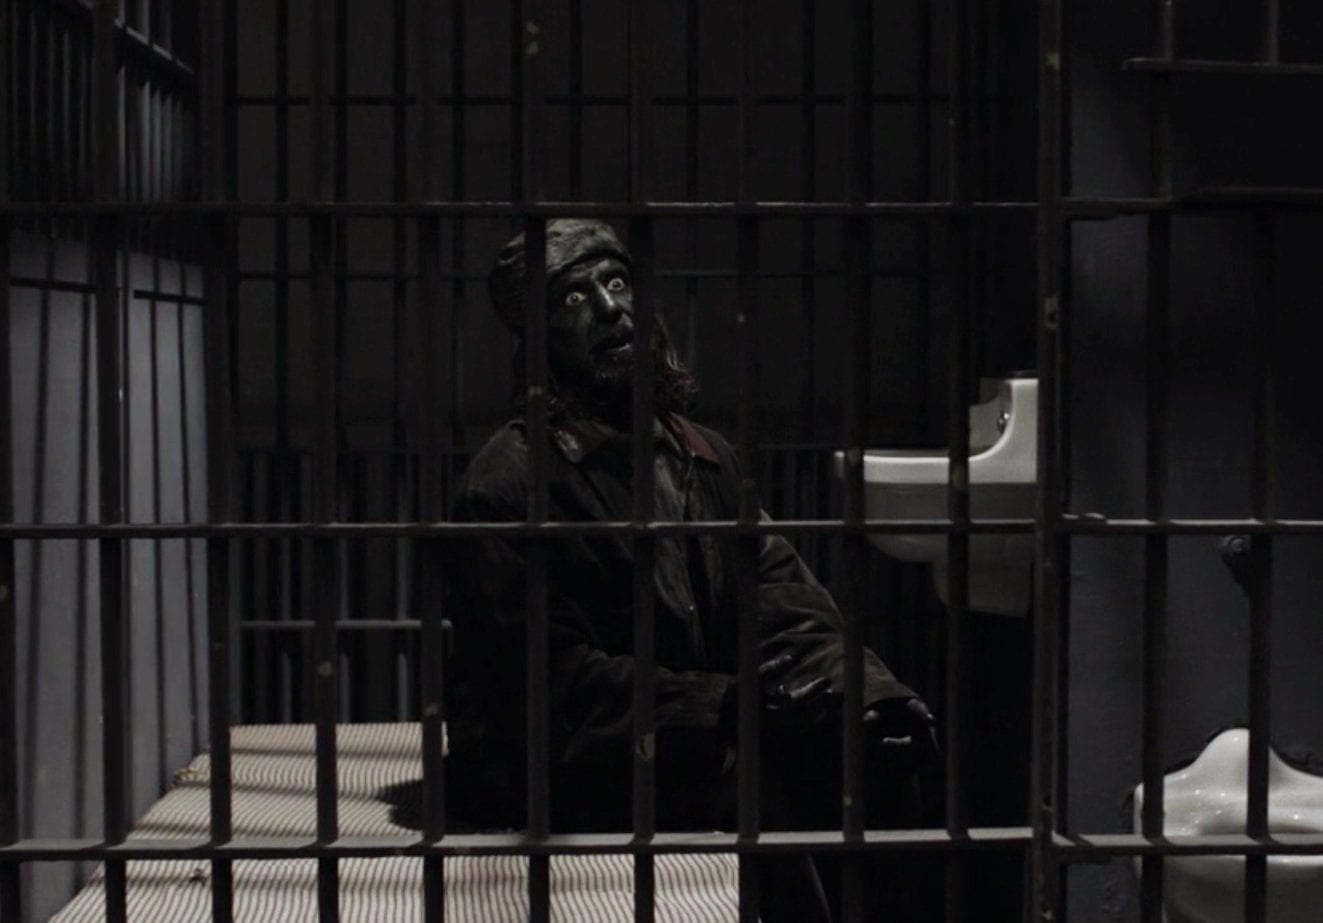 woodsman stare ahead scarily in the prison cell